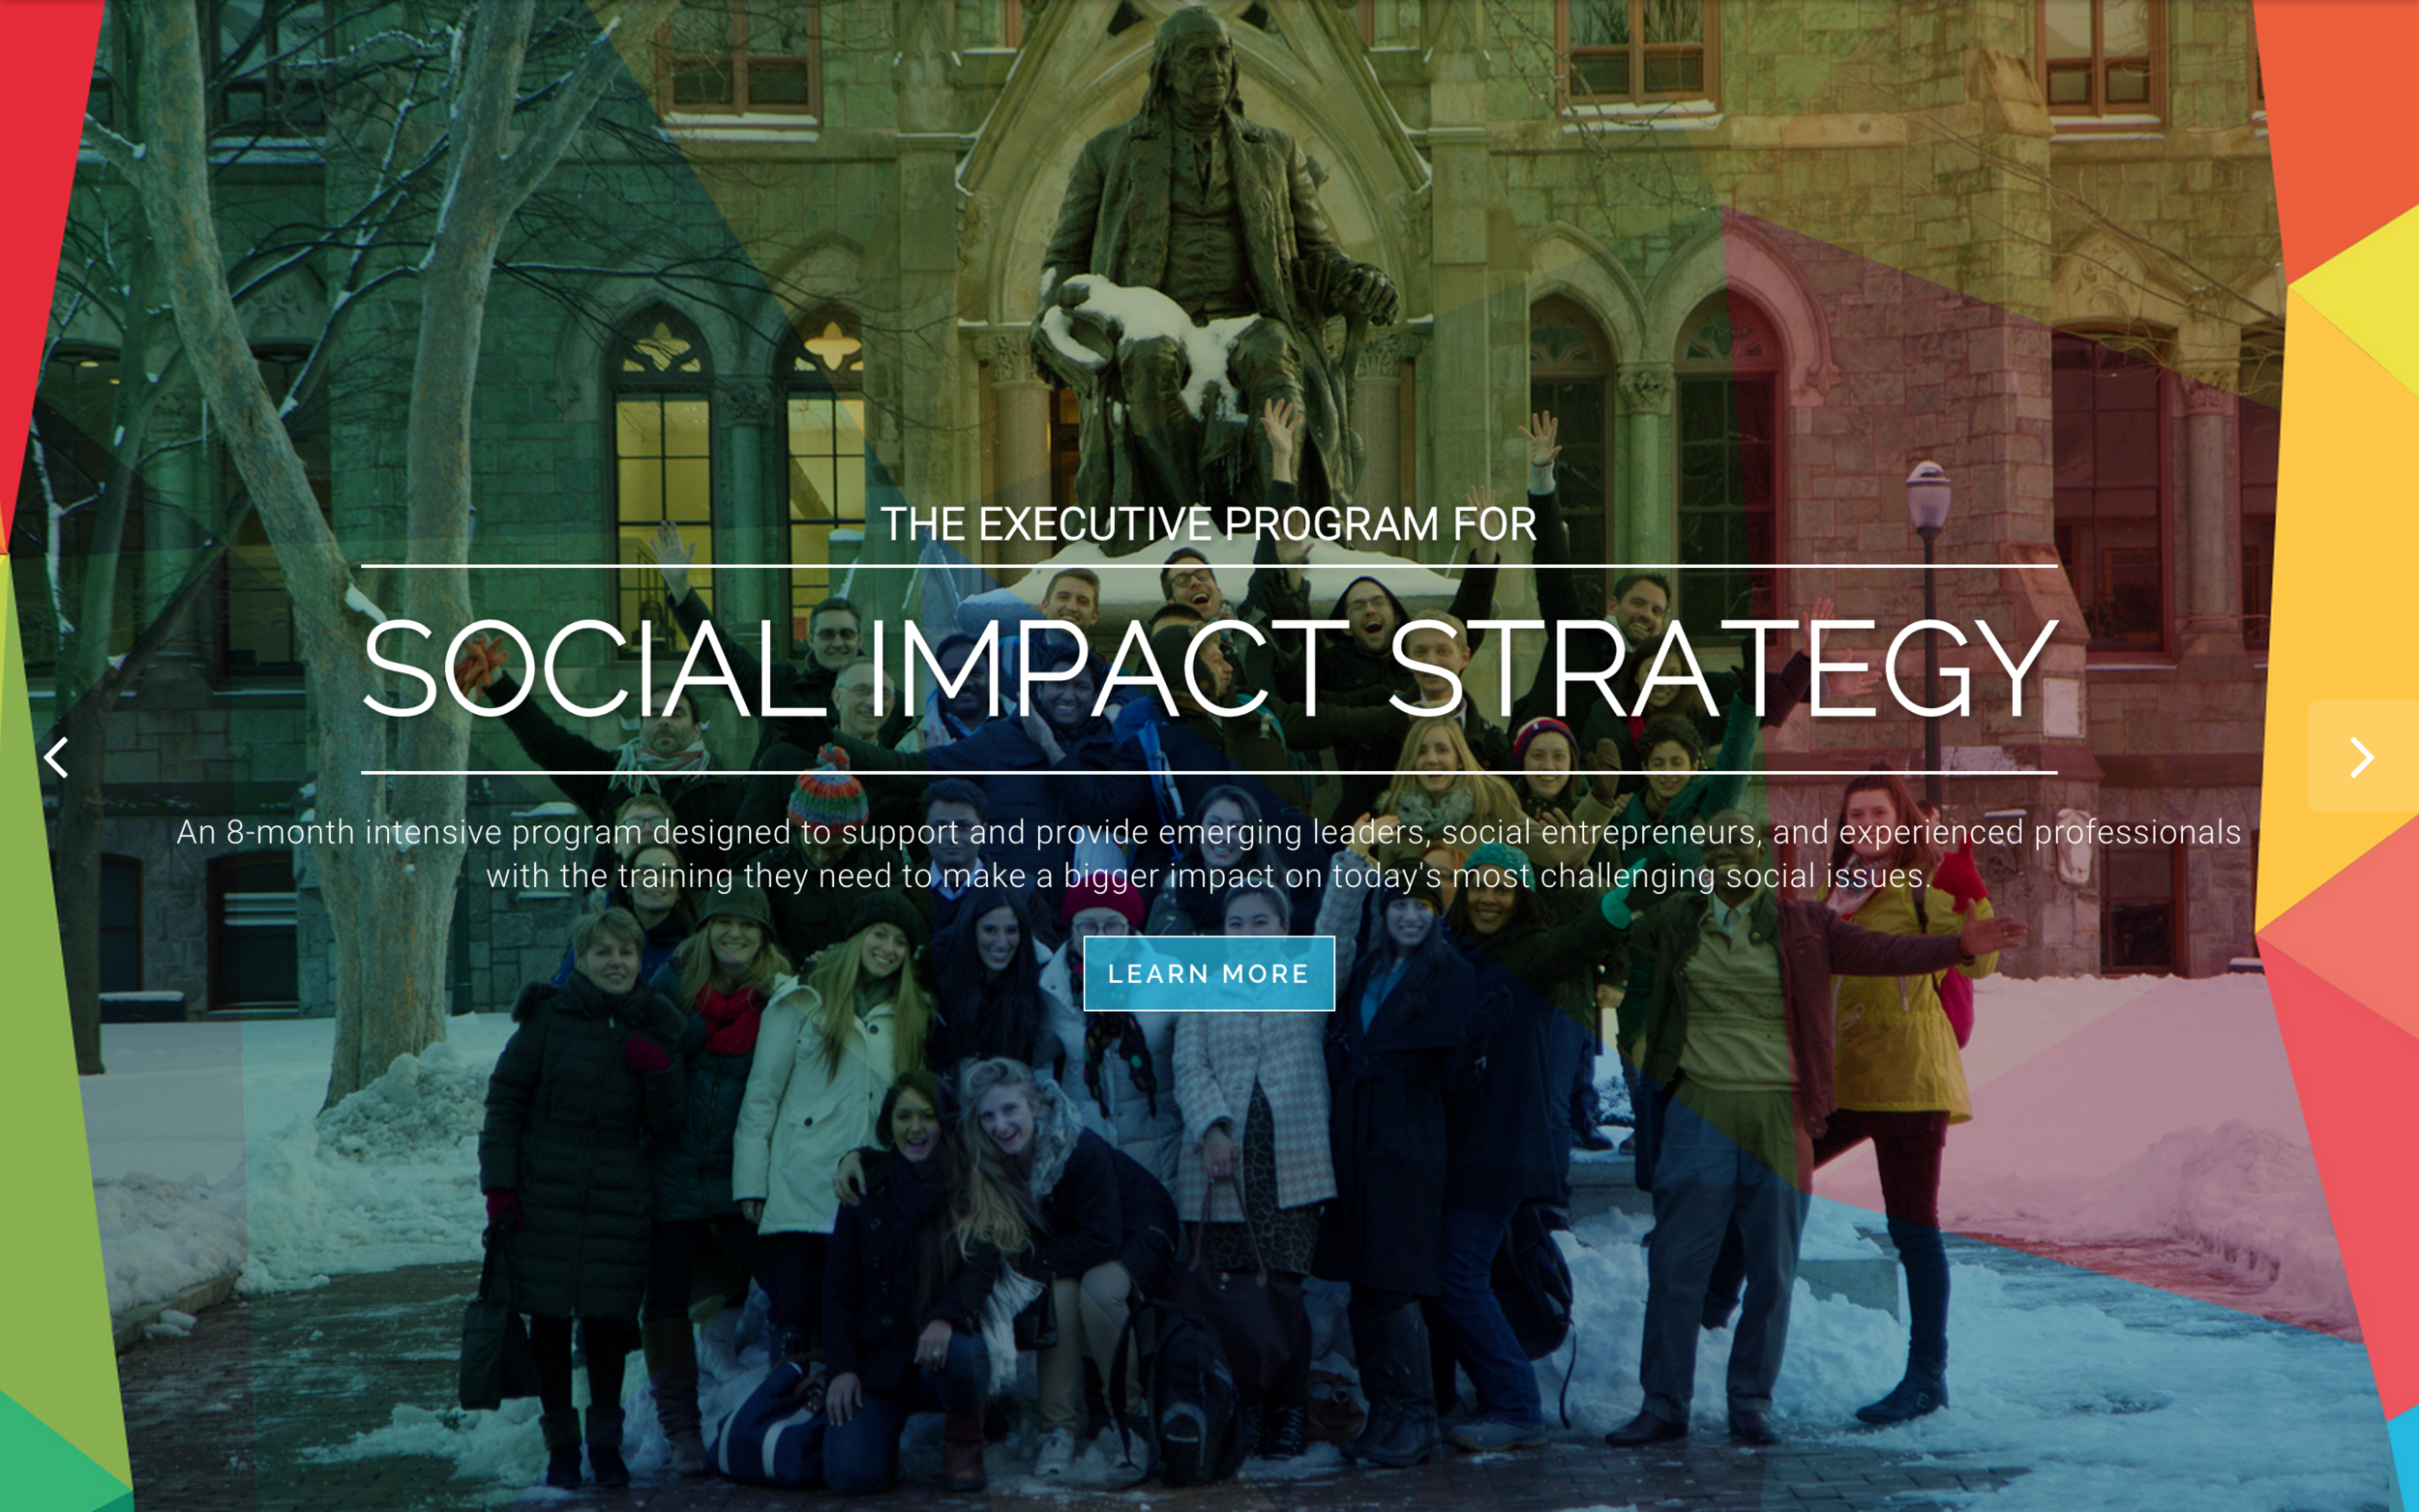 http://www.socialimpactstrategy.org/executive-program/